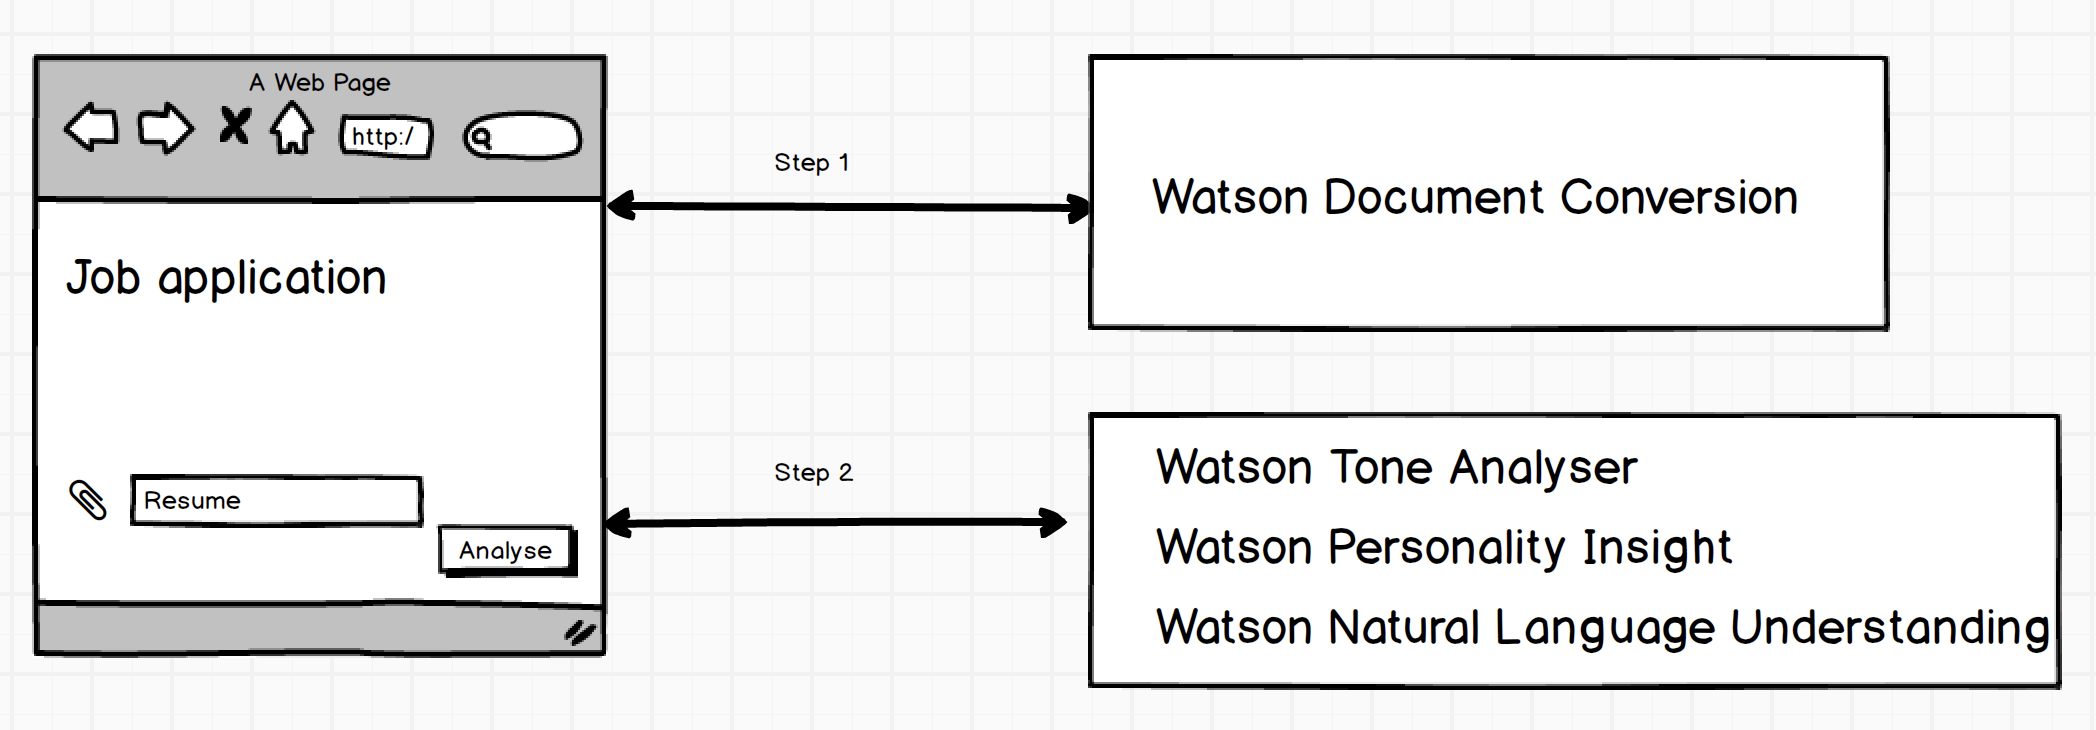 flow Watson Document Conversion Service